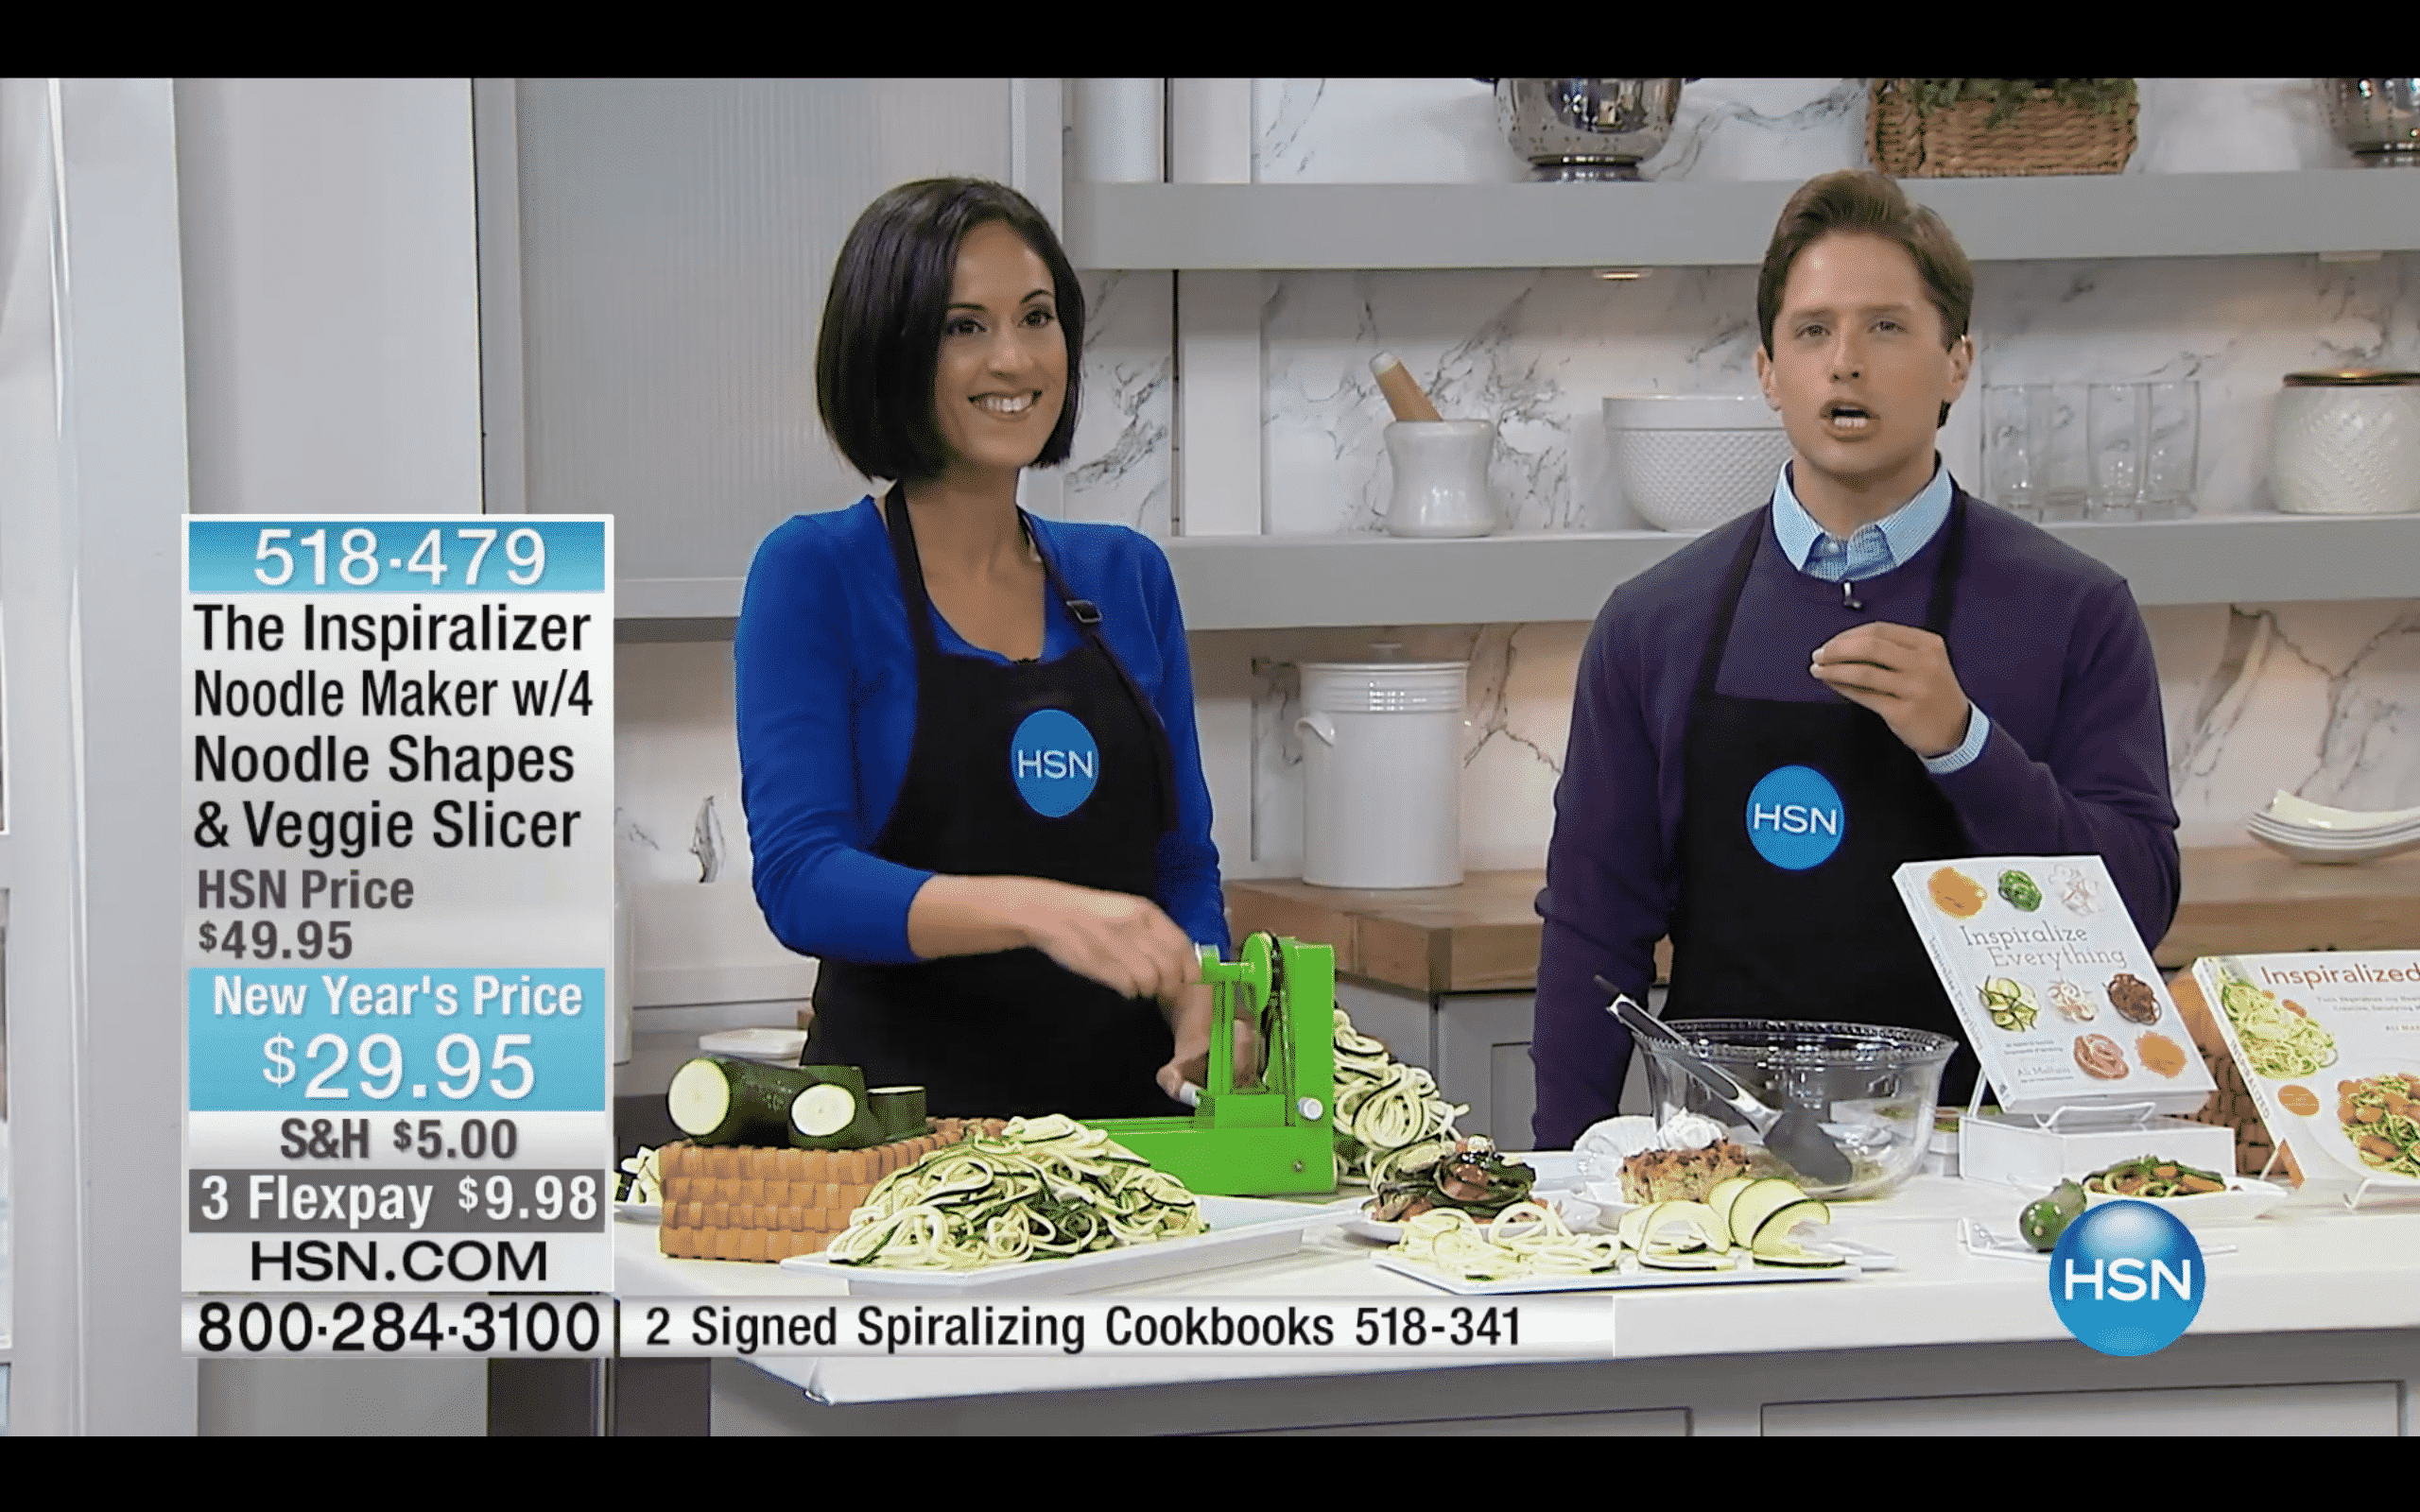 Inspiralized: I'm going back on HSN with the Inspiralizer!